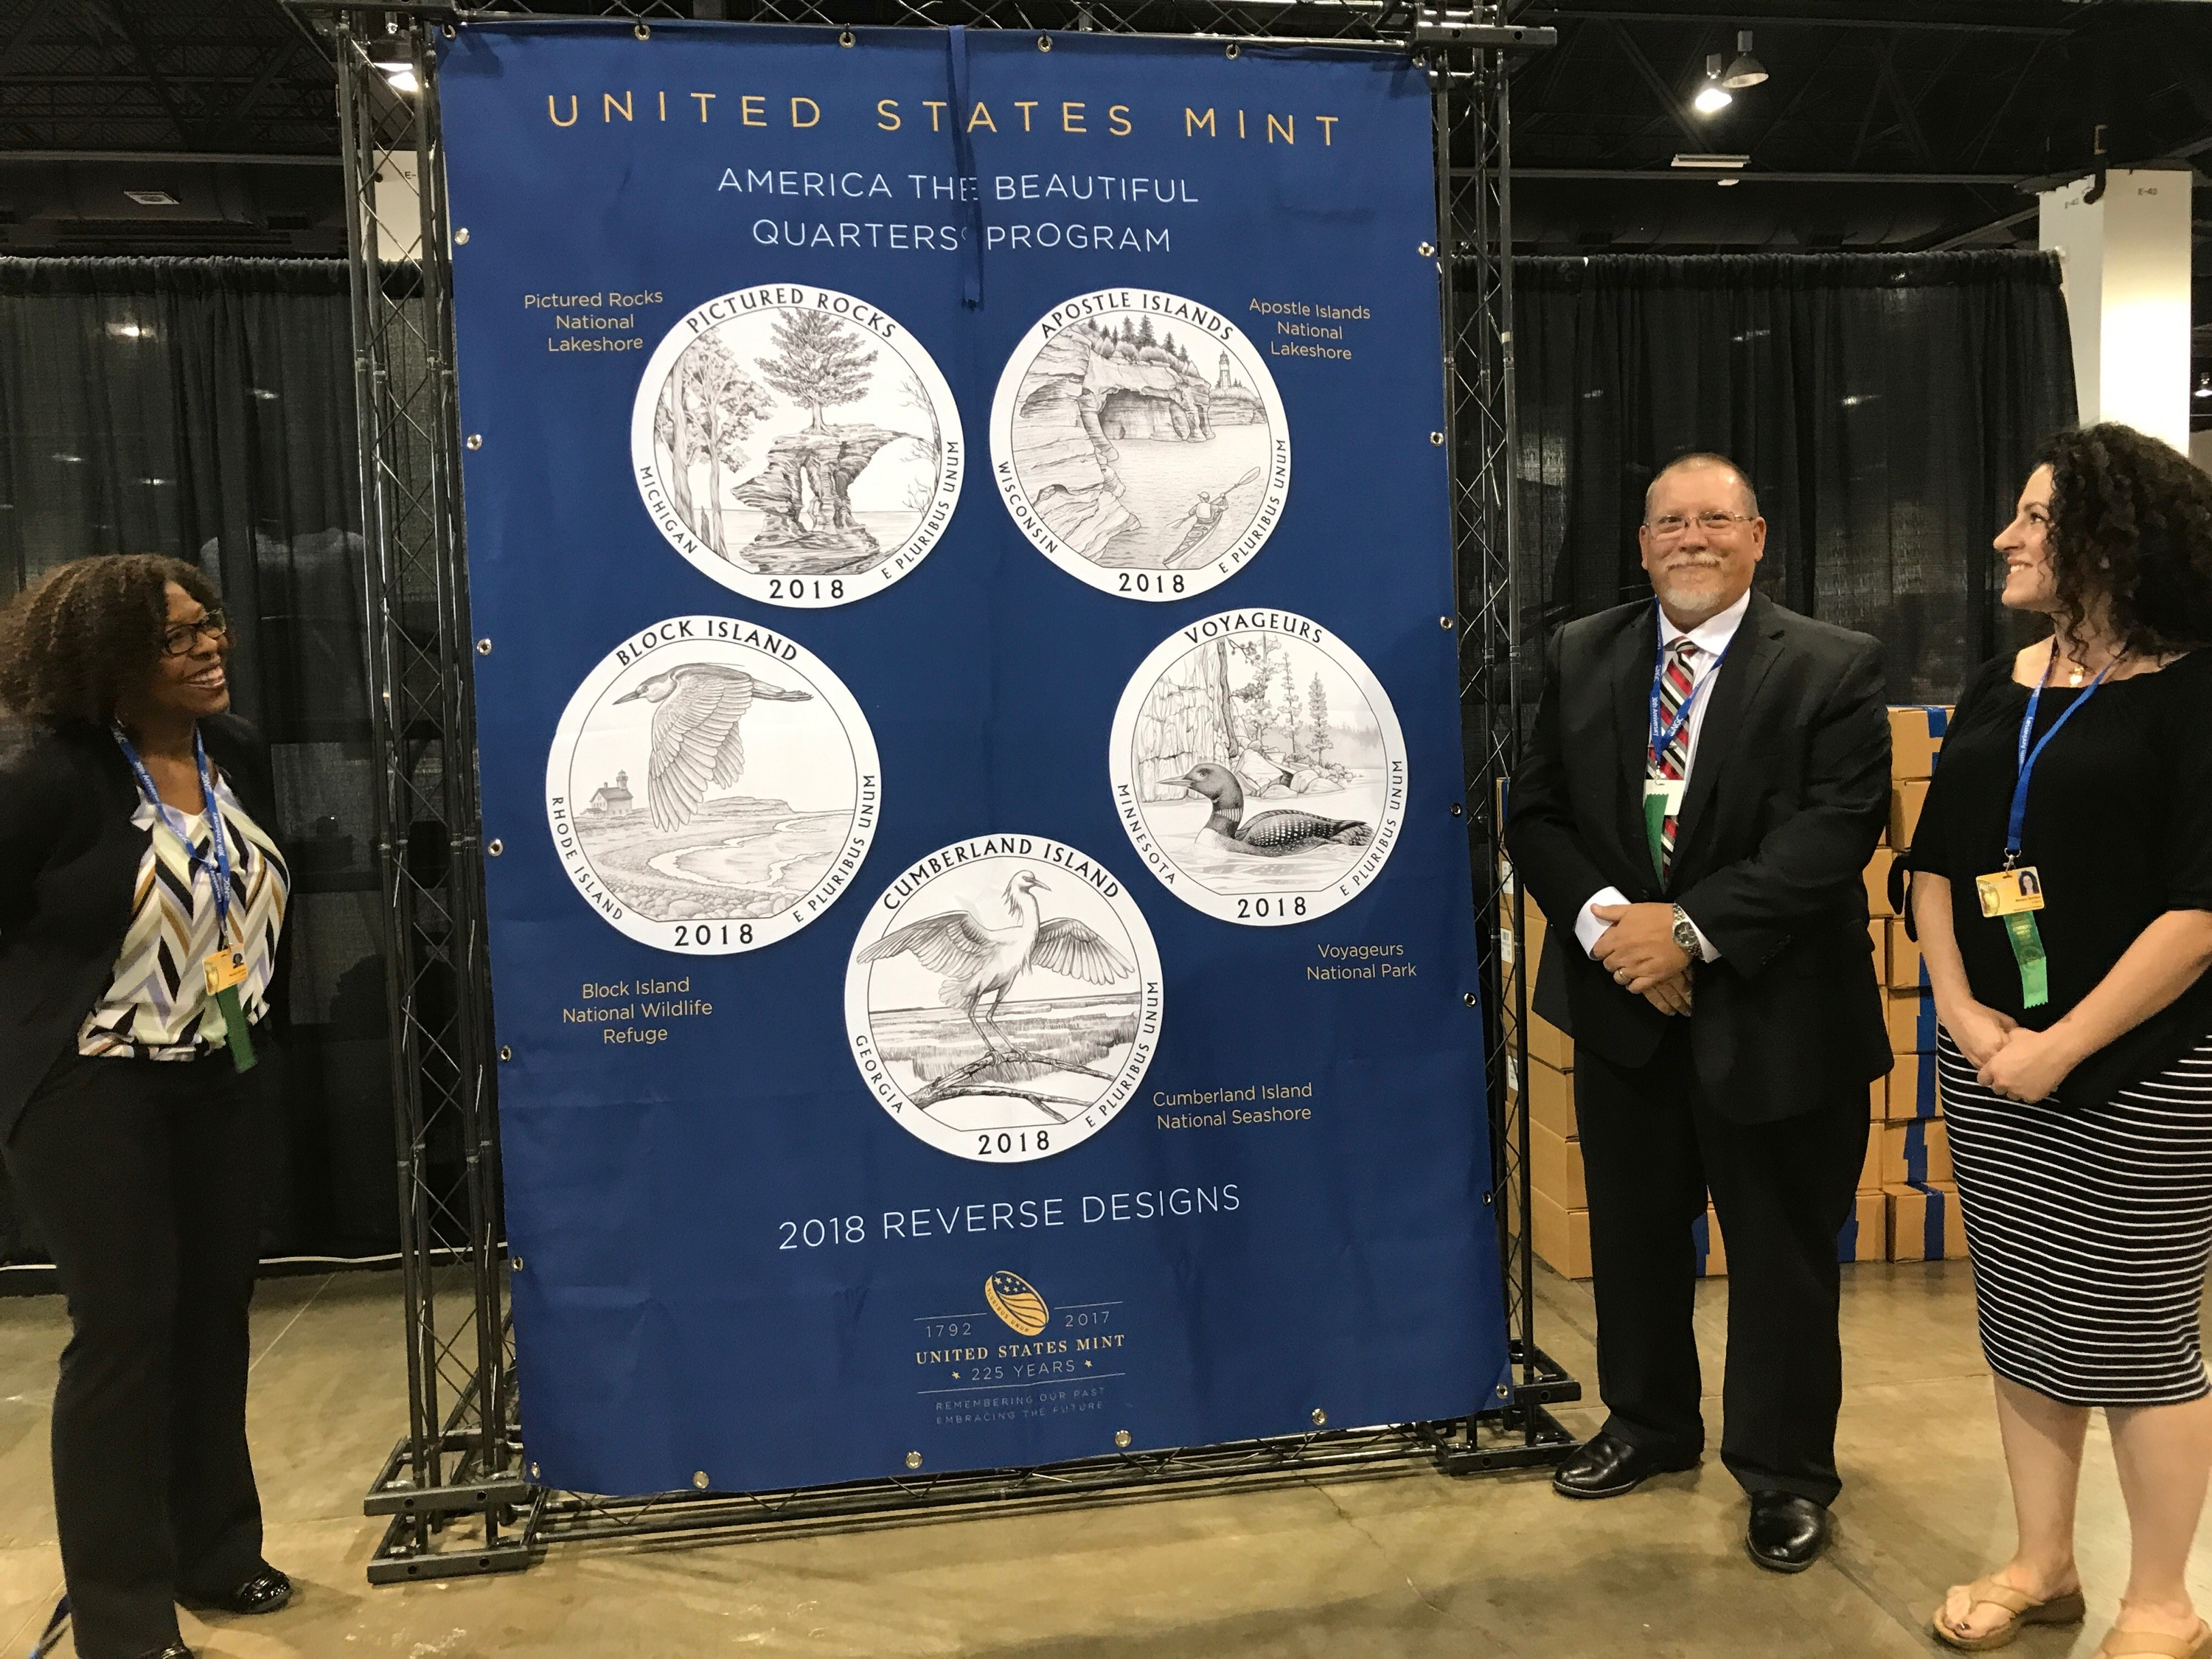 Designs for the 2018 America the Beautiful Quarters(R) Program are unveiled. U.S. Mint photo by Debbie Dawson.